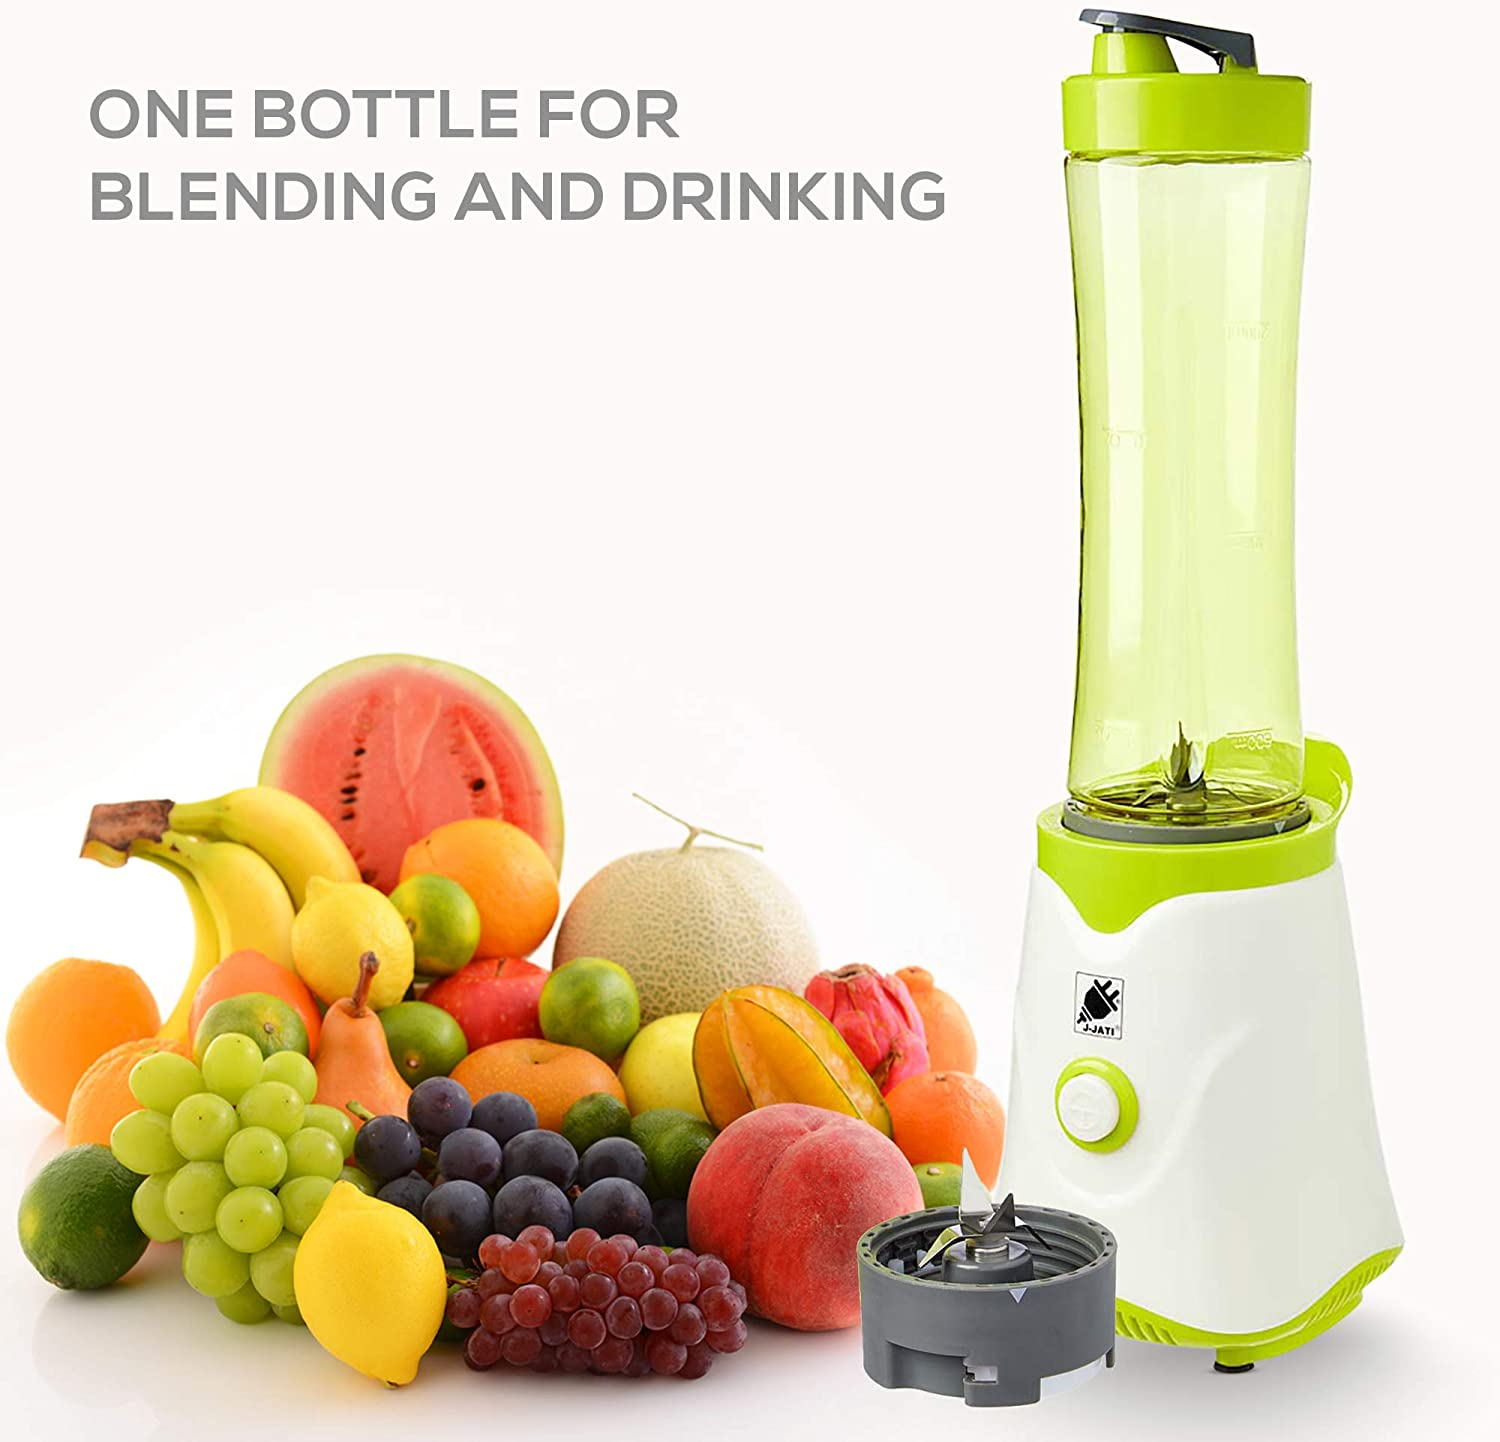 J-JATI Electric Personal Blender Juicer Drink Personal Size Blender fruit smoothie Maker With Portable Sports Travel Bottle to Go Easy Blend Personal Cup you can take with you anywhere Color- white BL-704